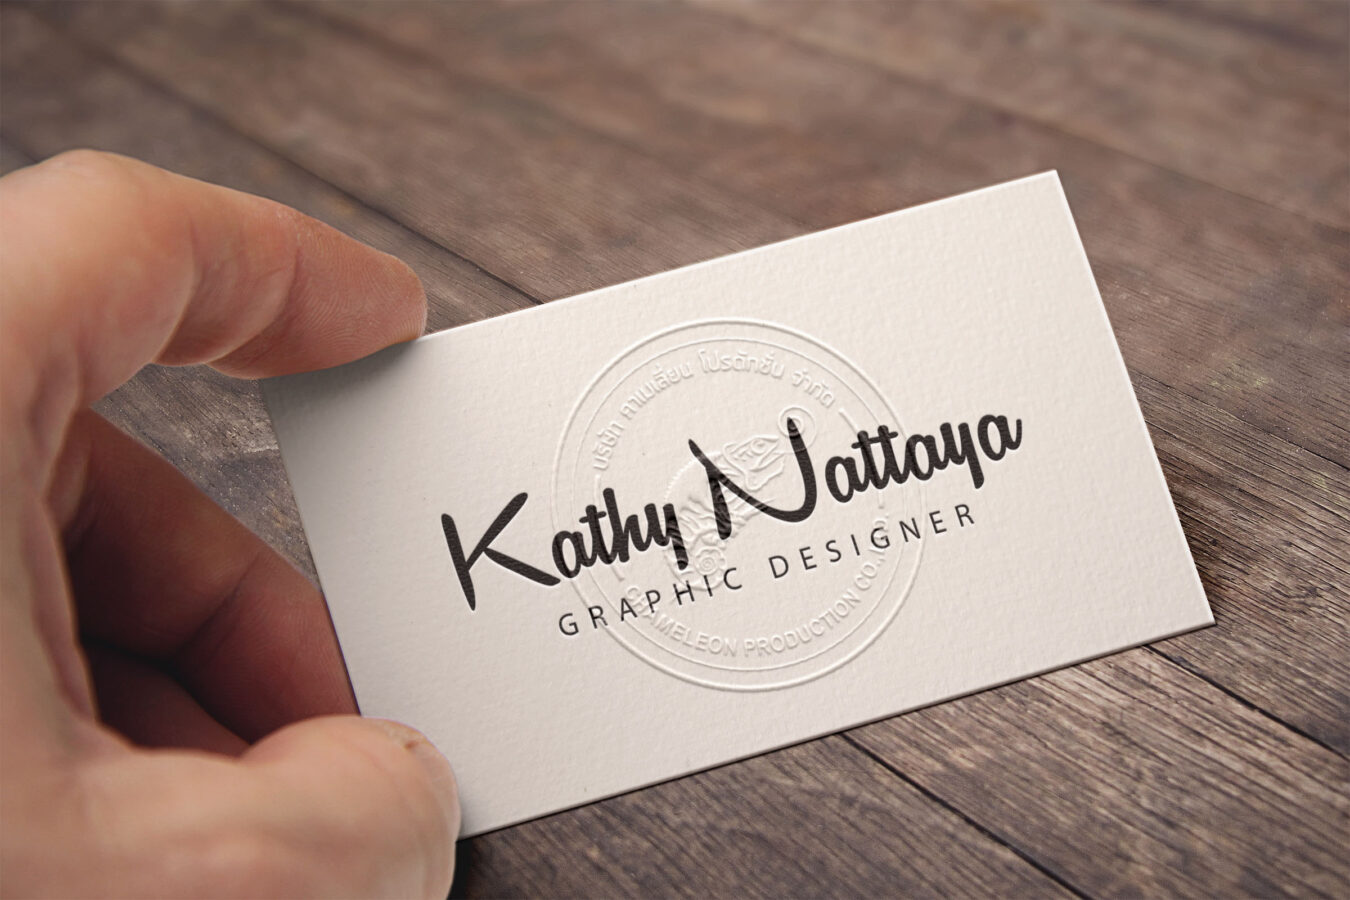 Graphic design, business card, koh samui, thailand